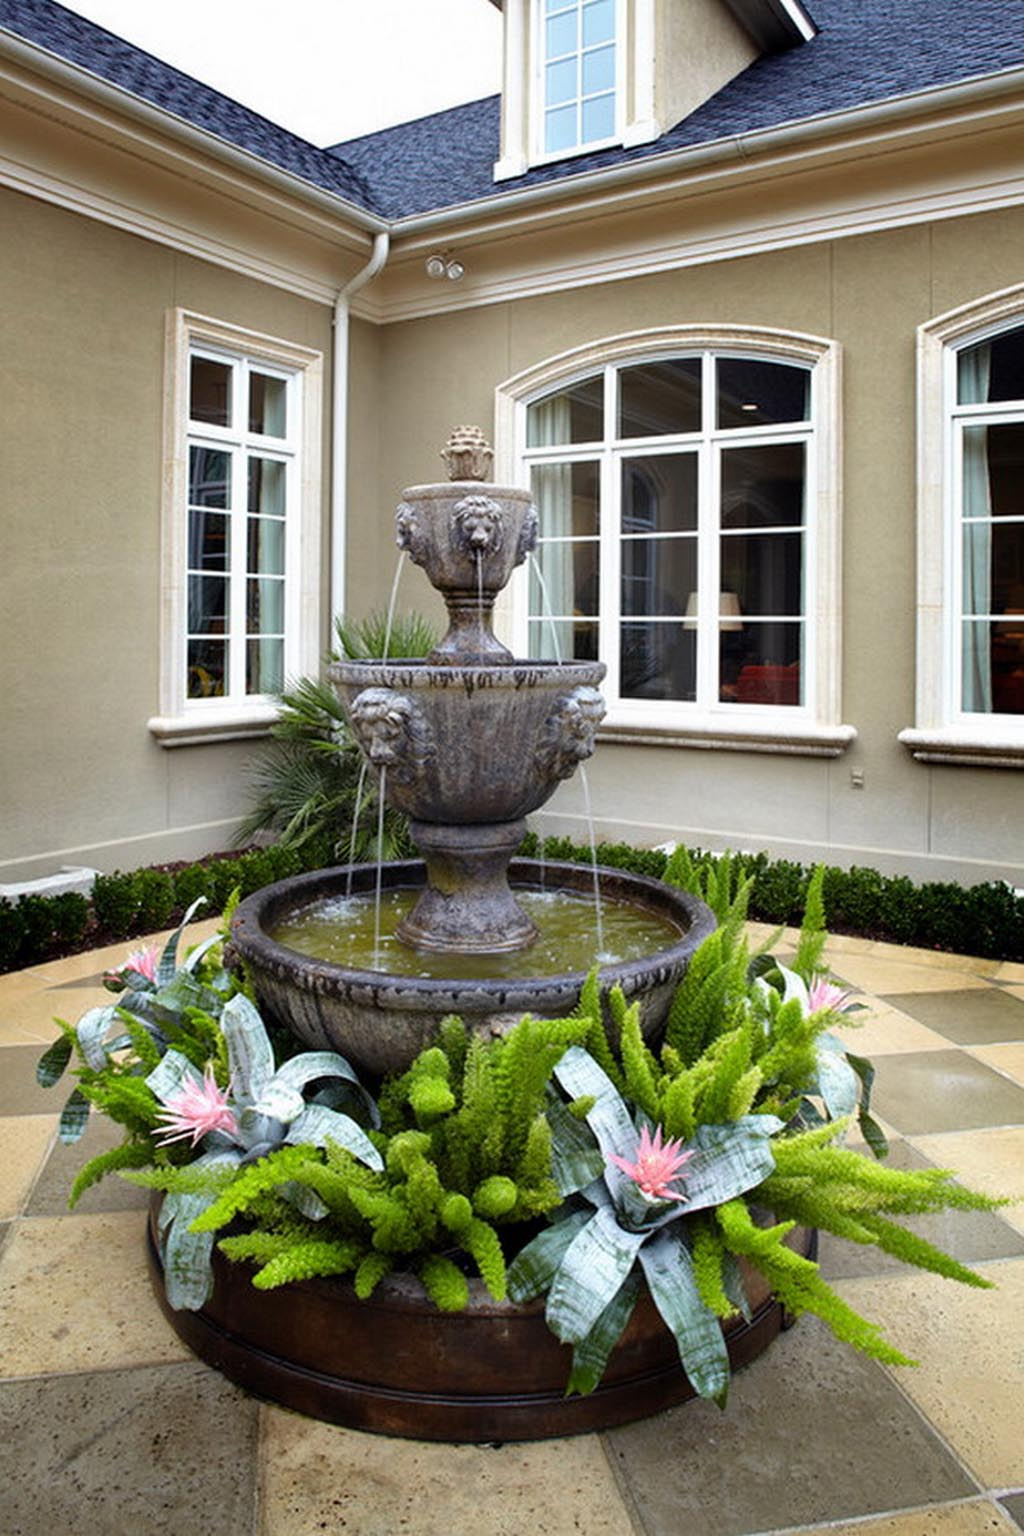 Water fountain covers outdoor fountain design ideas for Outdoor water fountain design ideas